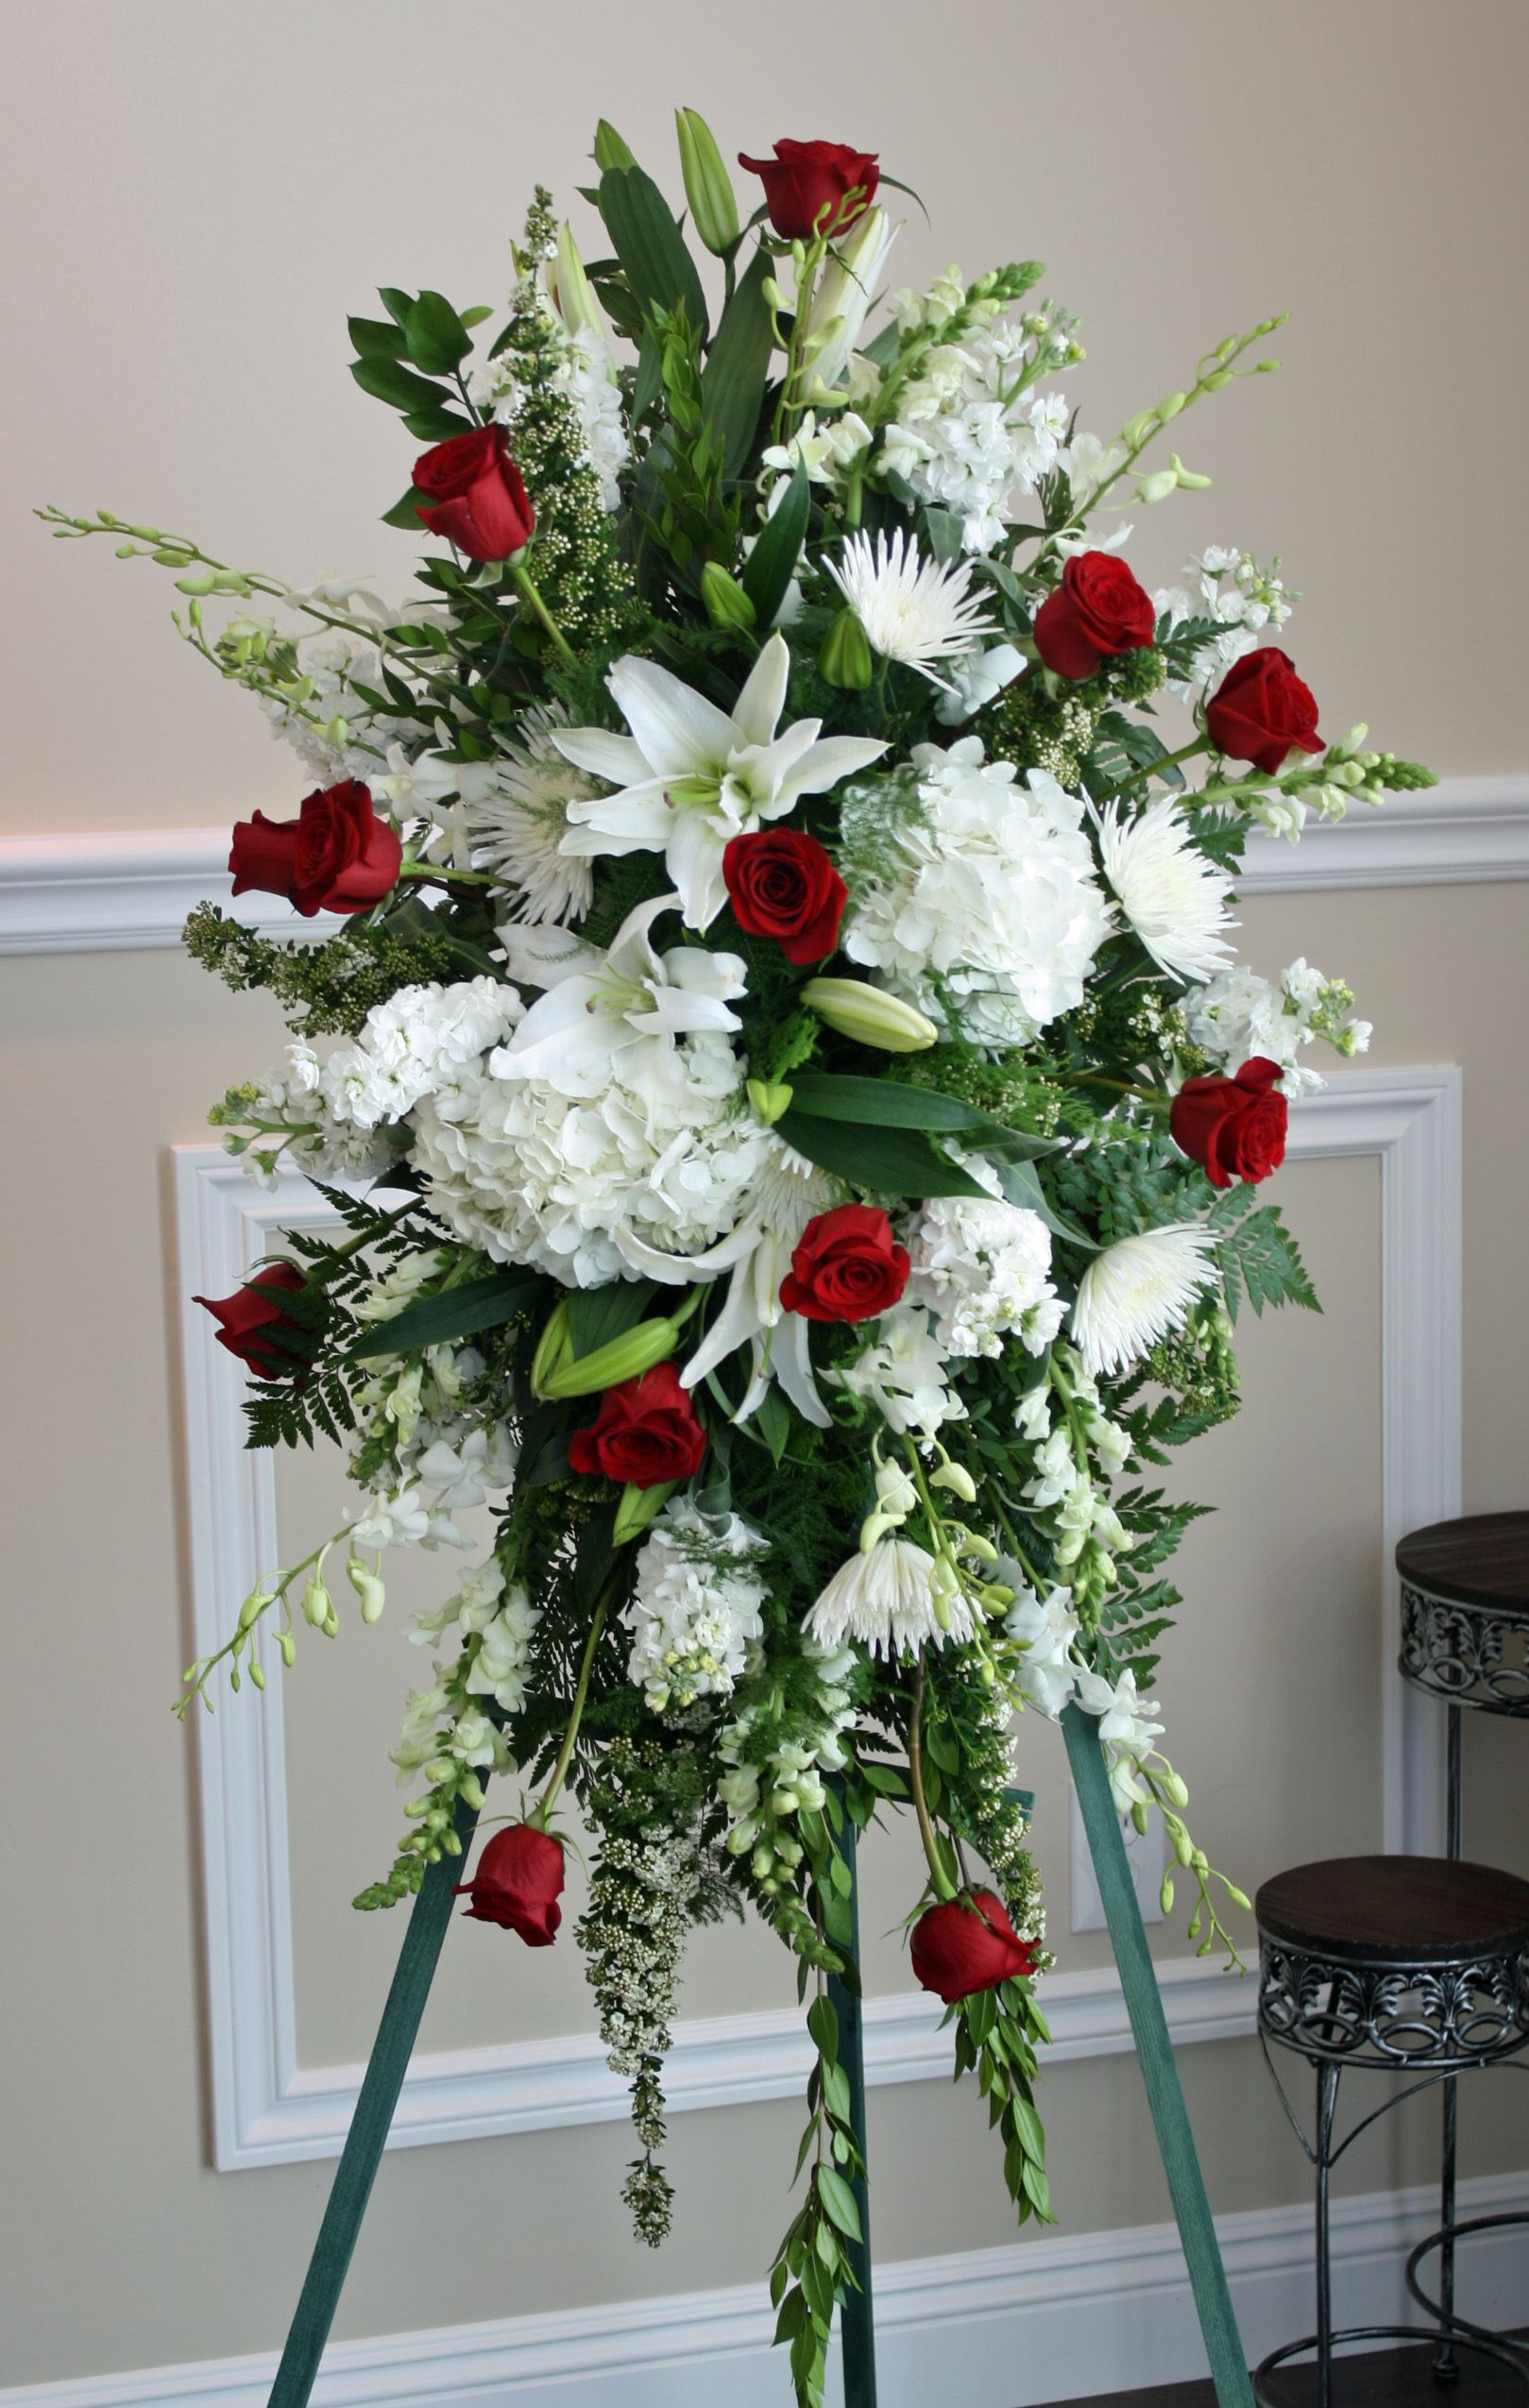 Sympathy flowers funeral flower arrangements unique floral sympathy flowers funeral flower arrangements unique floral designs izmirmasajfo